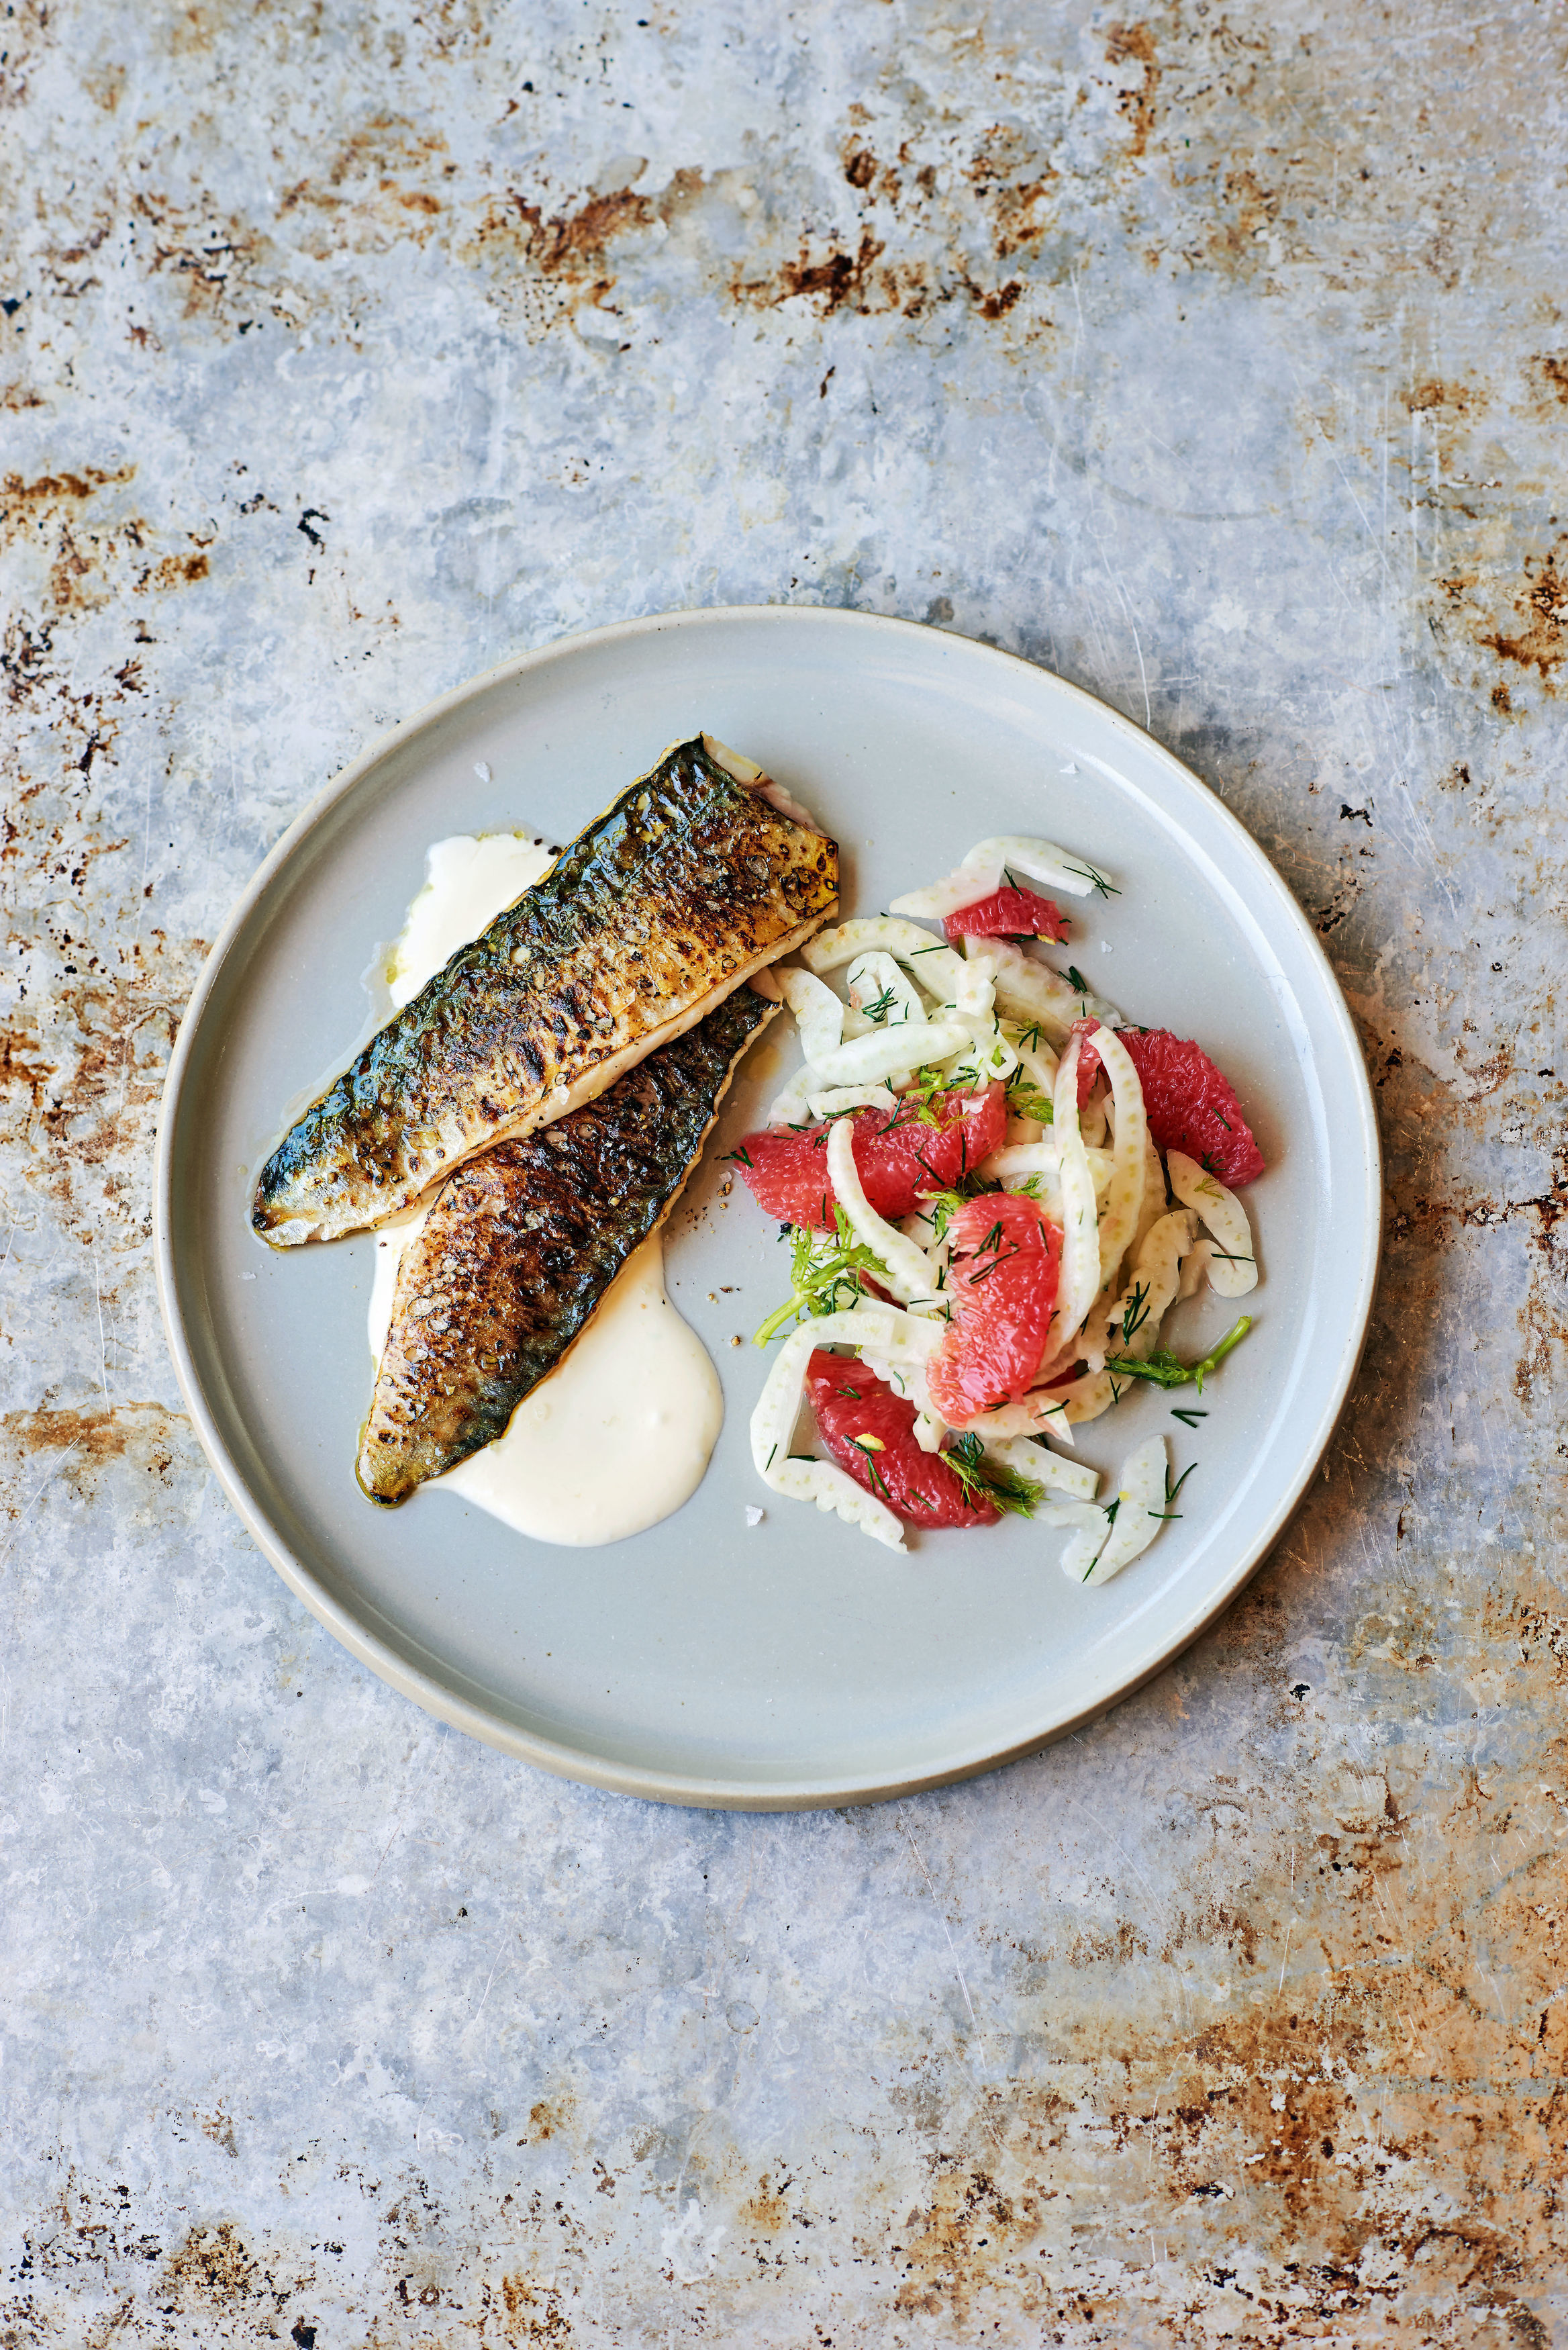 How to make James Martin's blowtorched mackerel with fennel and grapefruit salad